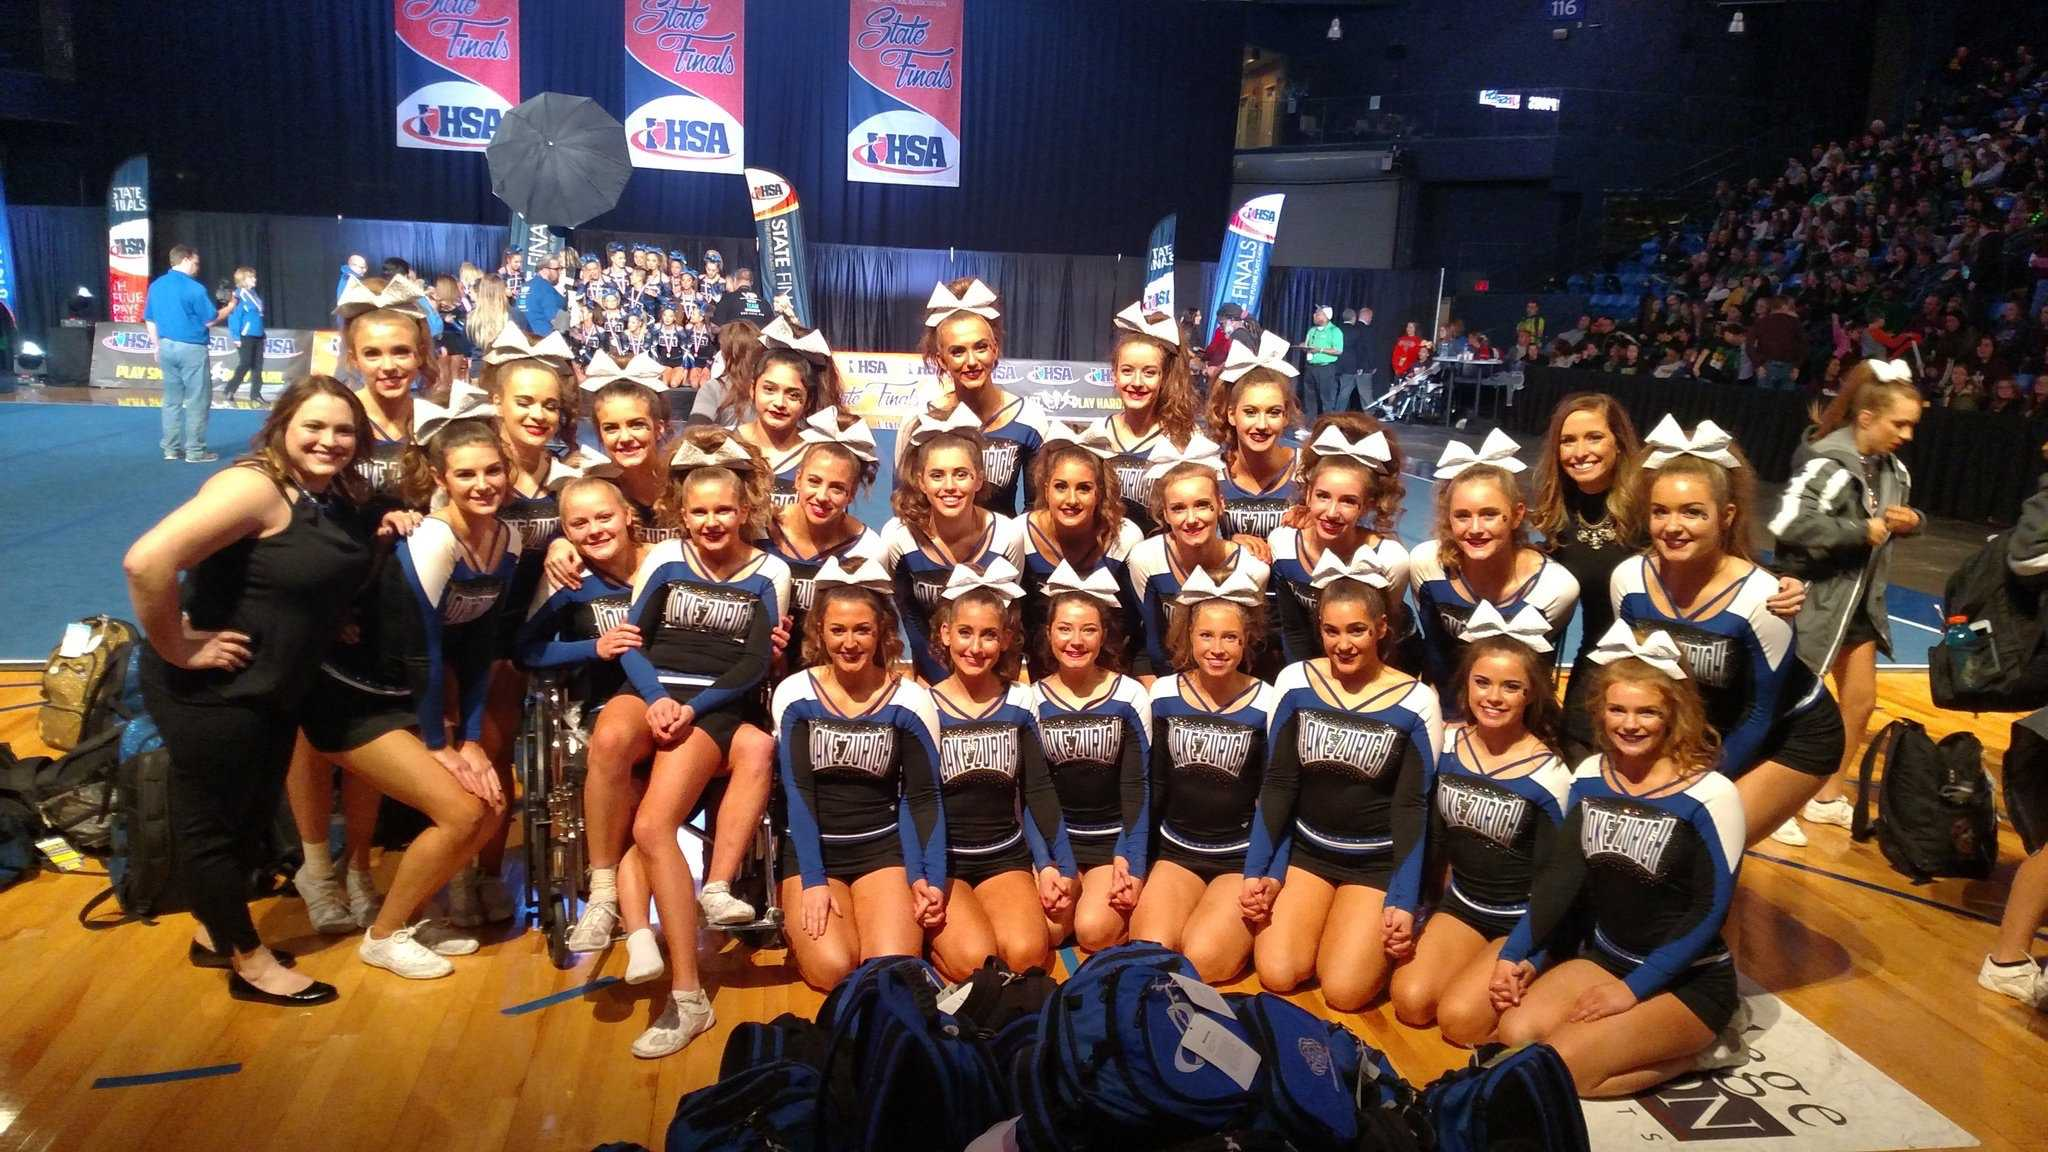 LZVC places seventh at State, though ending the weekend with an injured athlete.